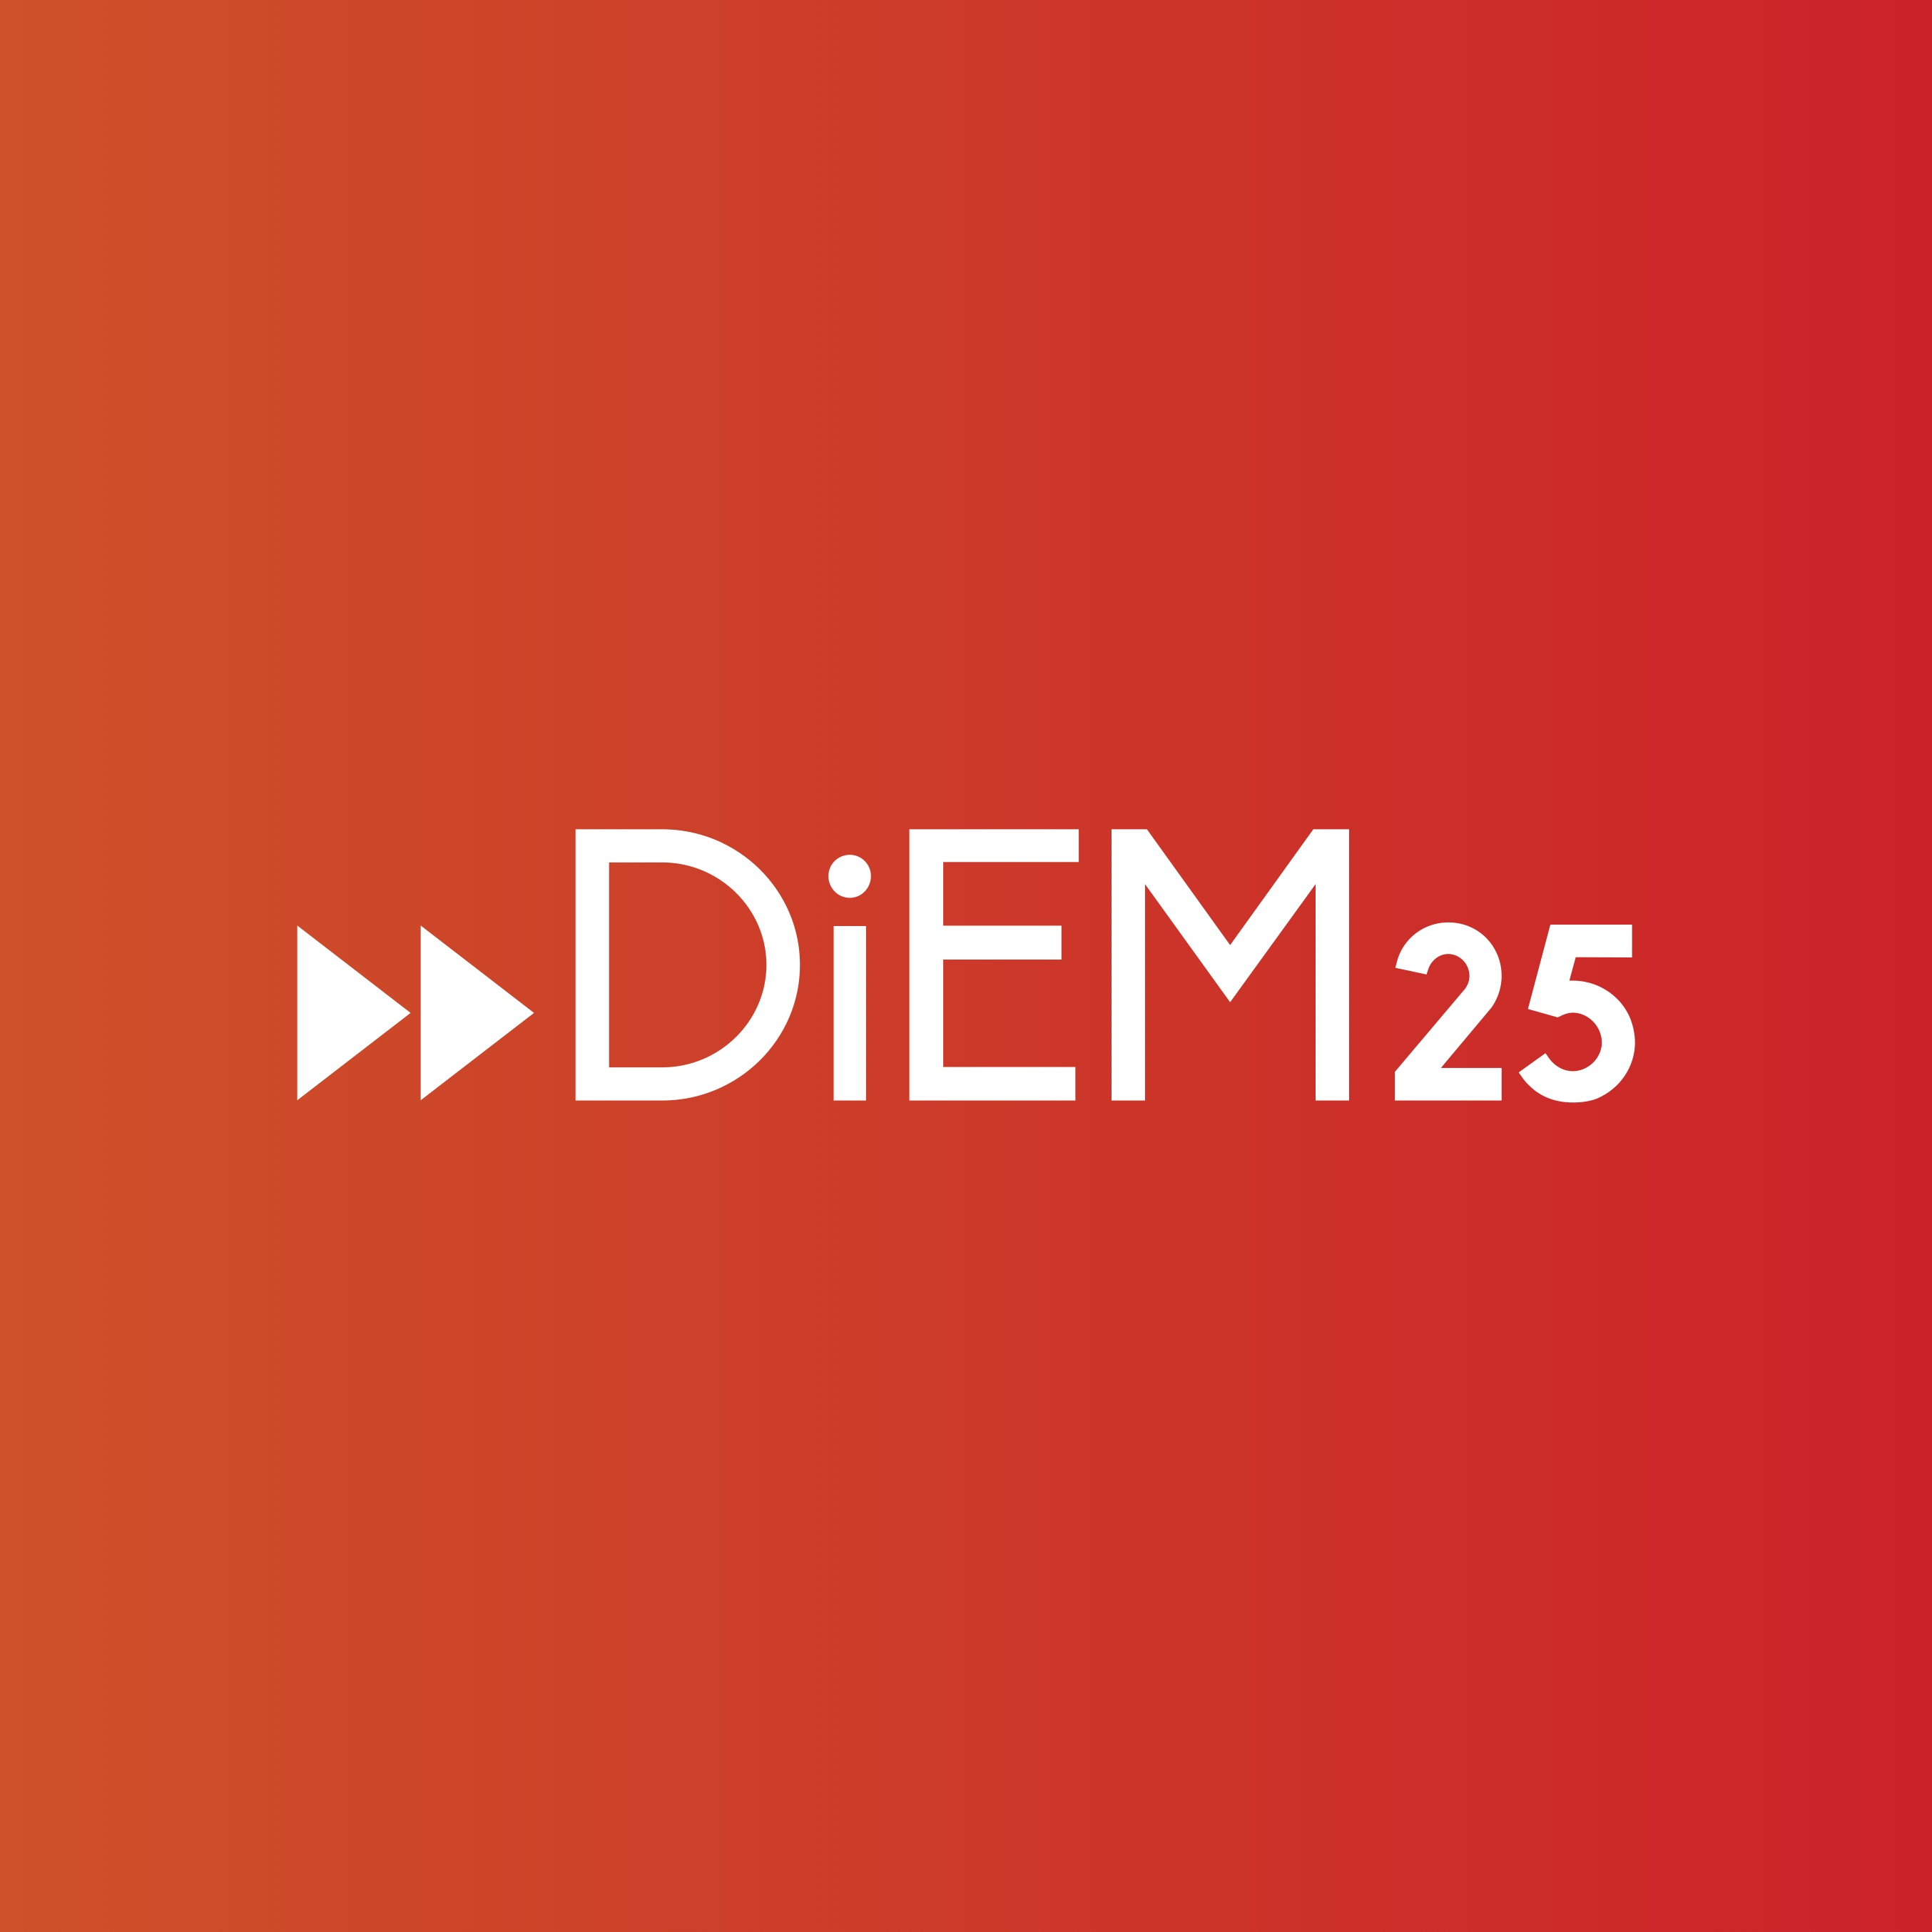 DiEM LOGO 1 colour background.jpg